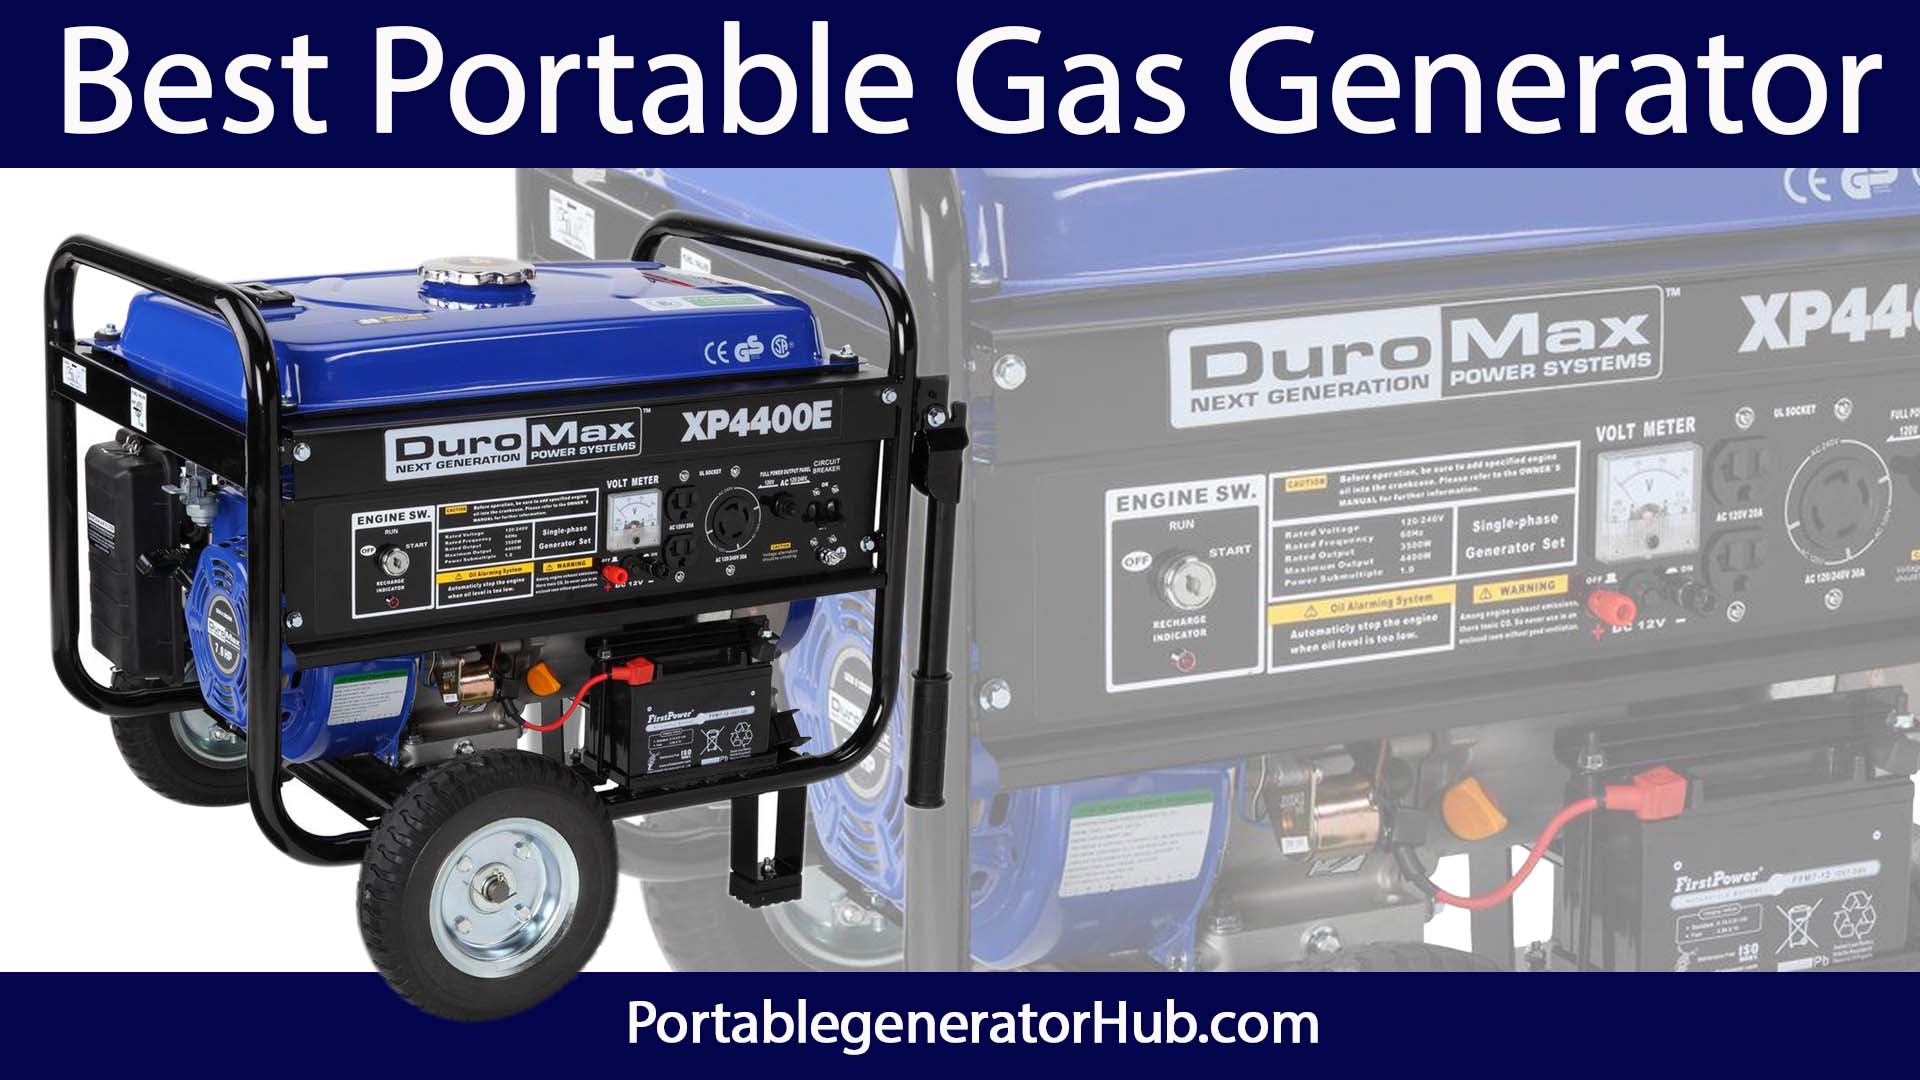 Top 8 Best Portable Gas Generator Strongly Recommended Picks By Ratio